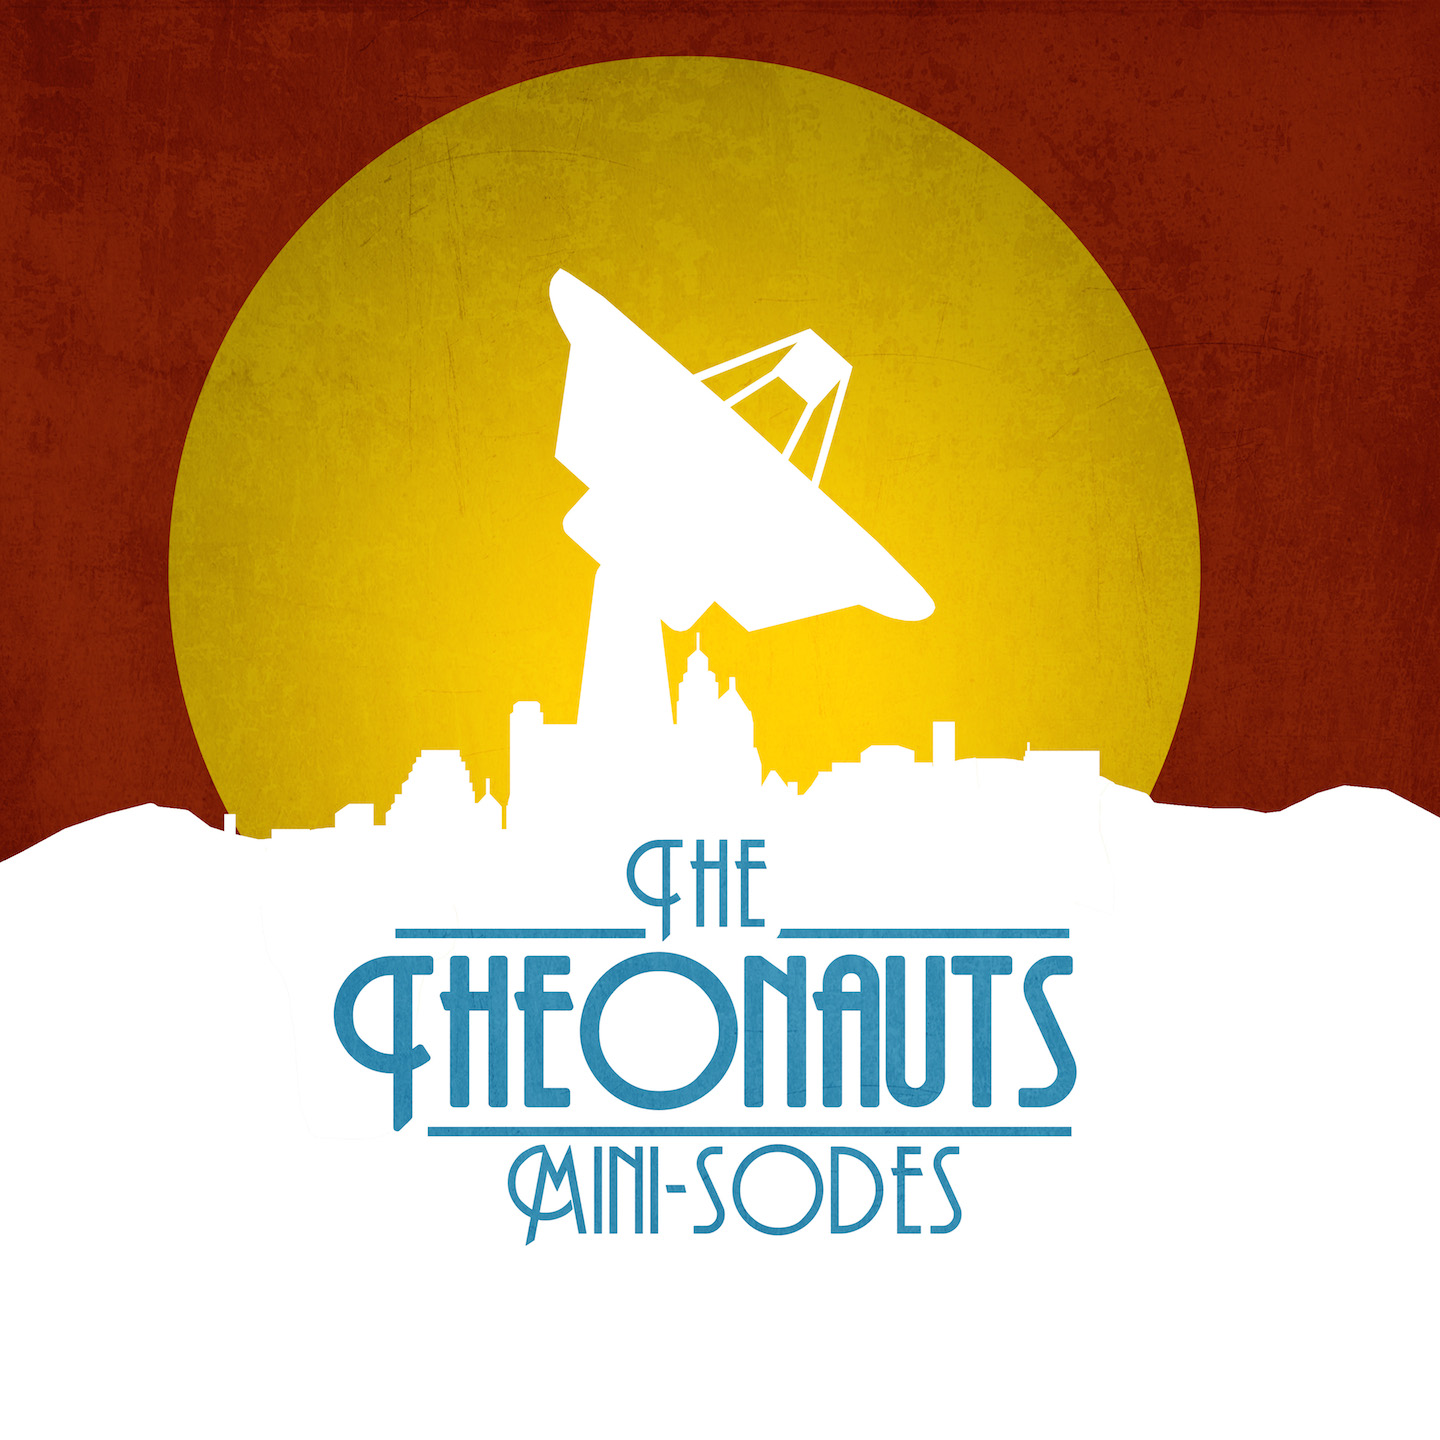 Theonauts Minisode:  Passion Week - Day 5